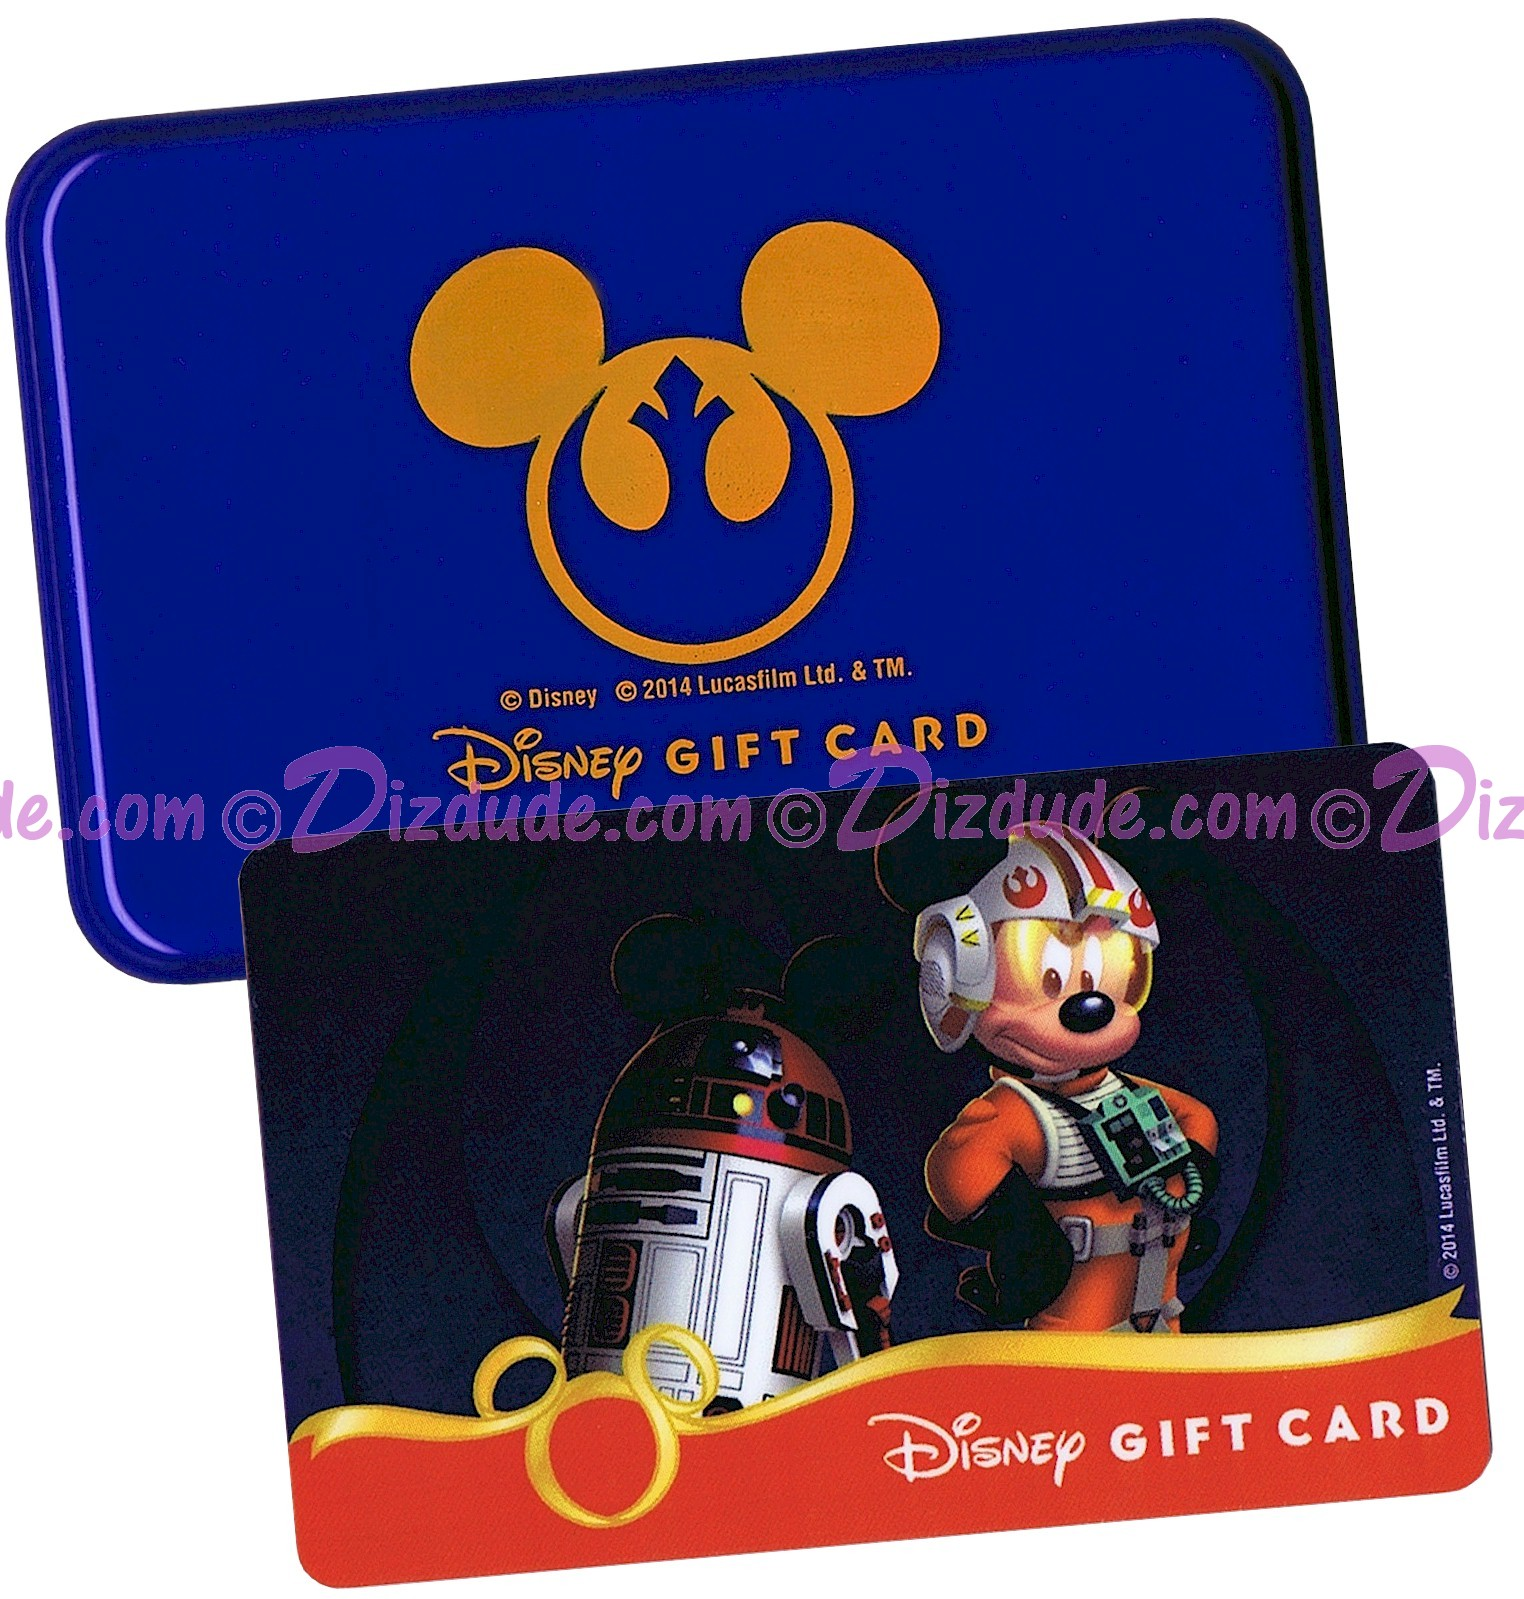 Star Wars REBELS Gift Card with Case Limited Edition ~ Disney Star Wars Weekend 2014  © Dizdude.com